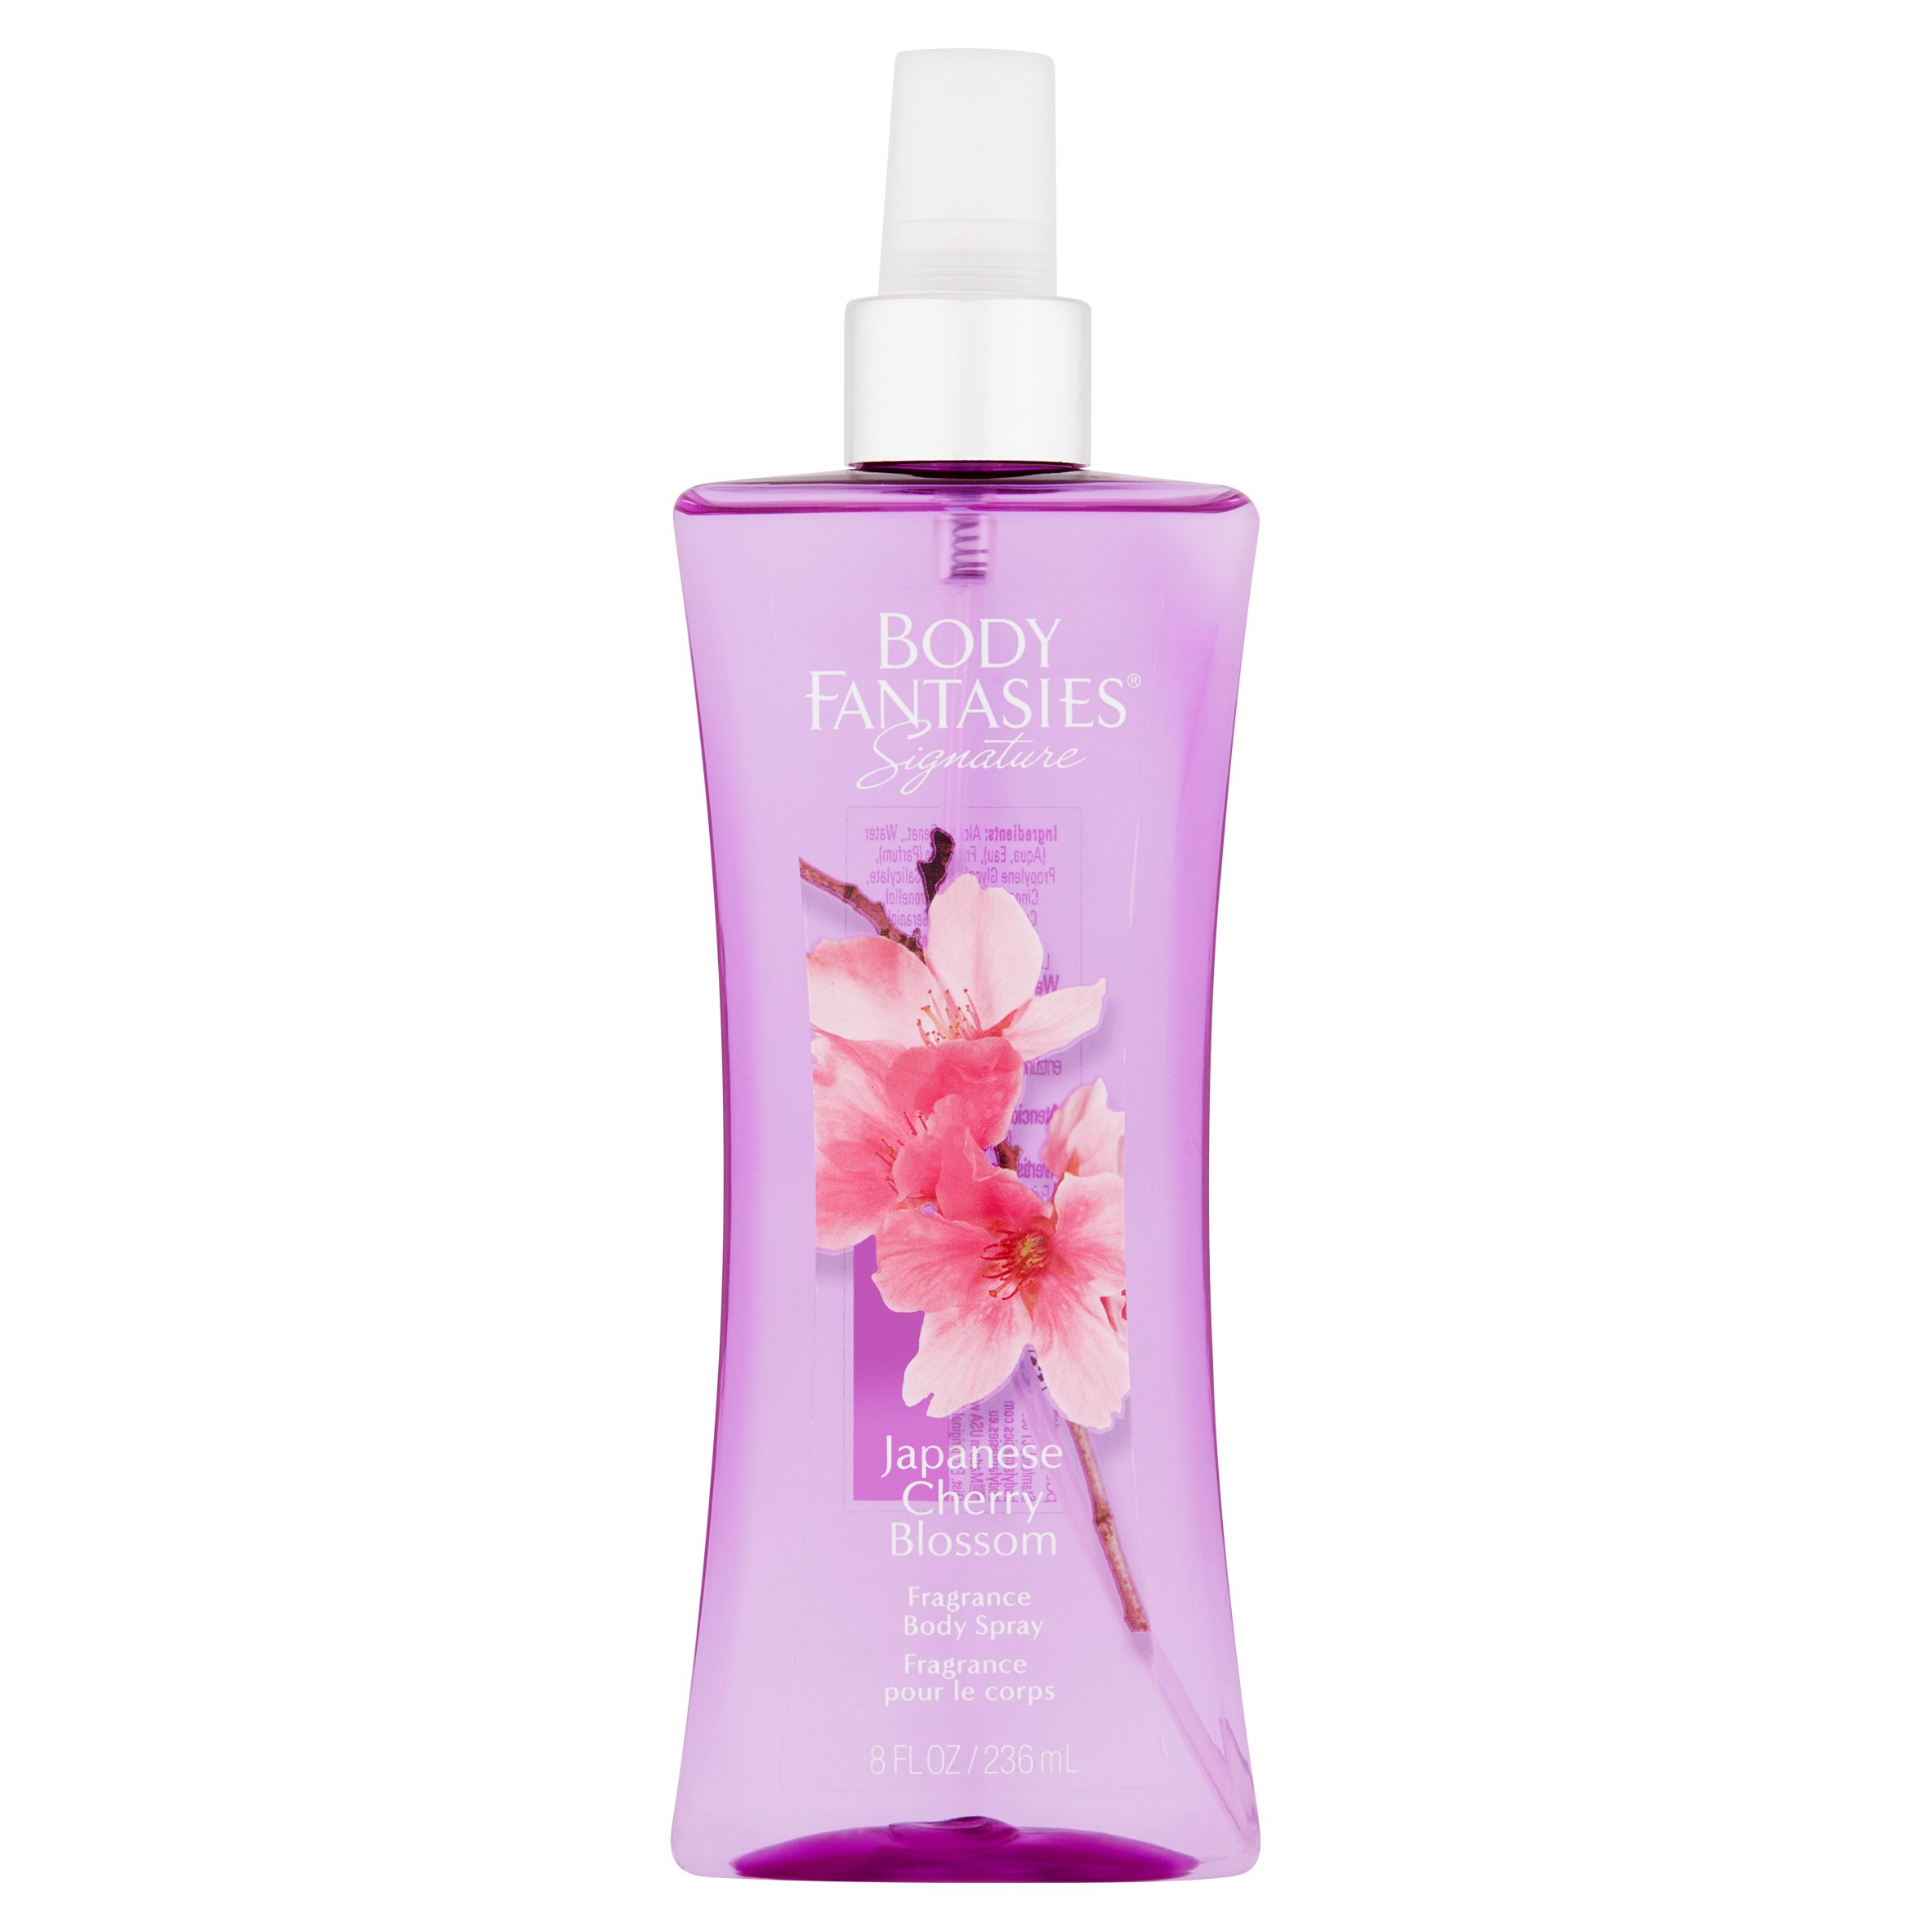 Body Fantasies Signature Japanese Cherry Blossom Fragrance Body Spray, 8 fl oz